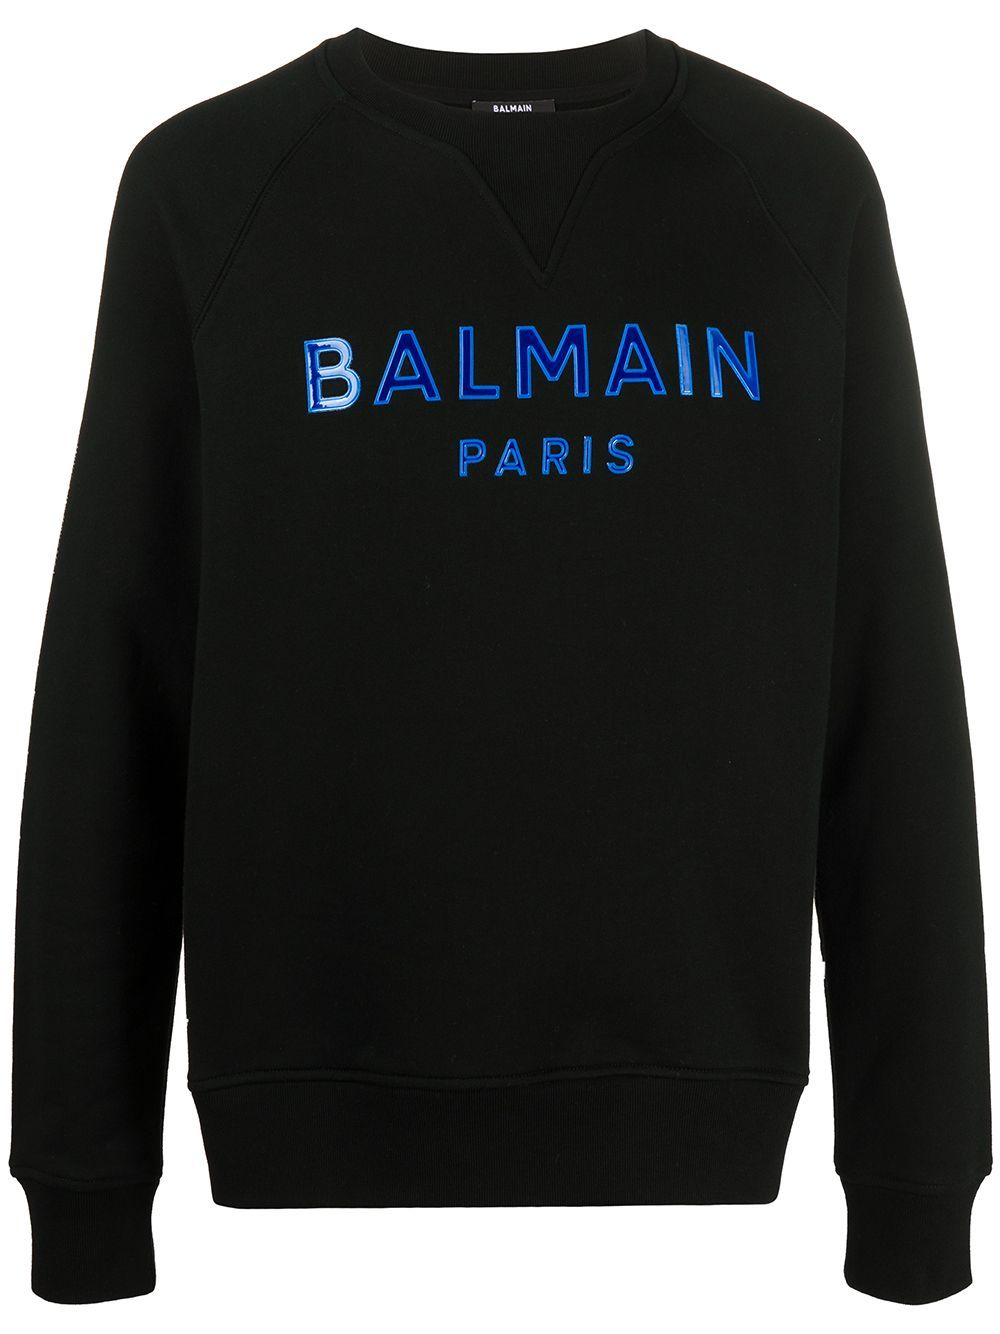 BALMAIN gel logo sweatshirt black/blue - Maison De Fashion